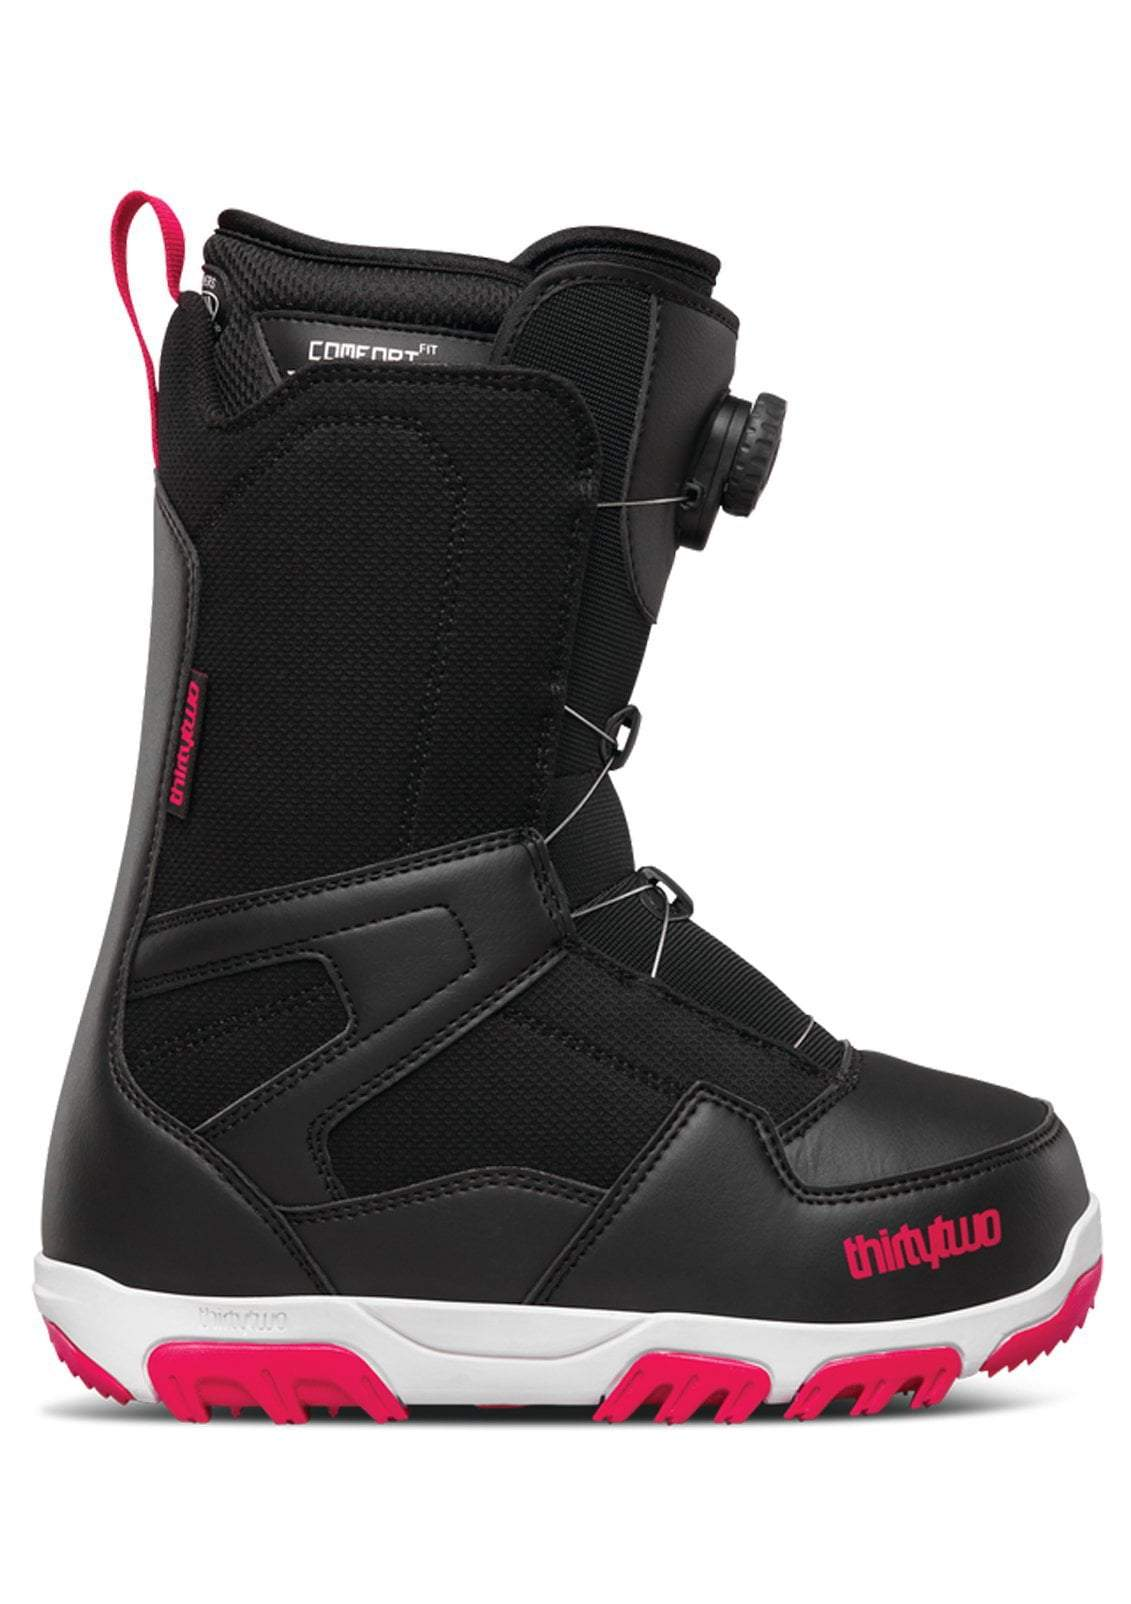 Women's Shifty Boa '17 Snow Boots